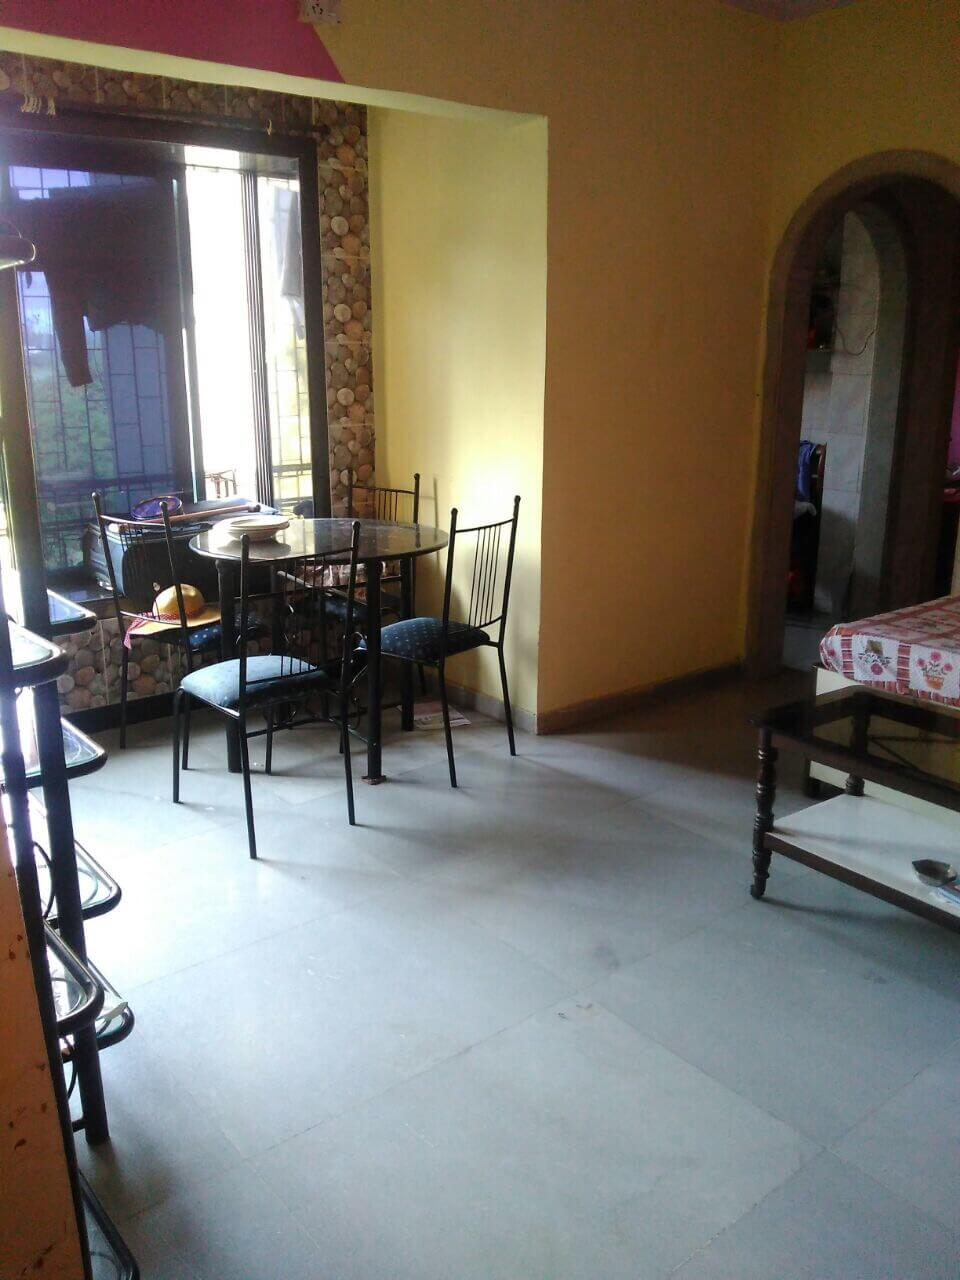 1 BHK flat avilable for rent in a peaceful locality for families and executives